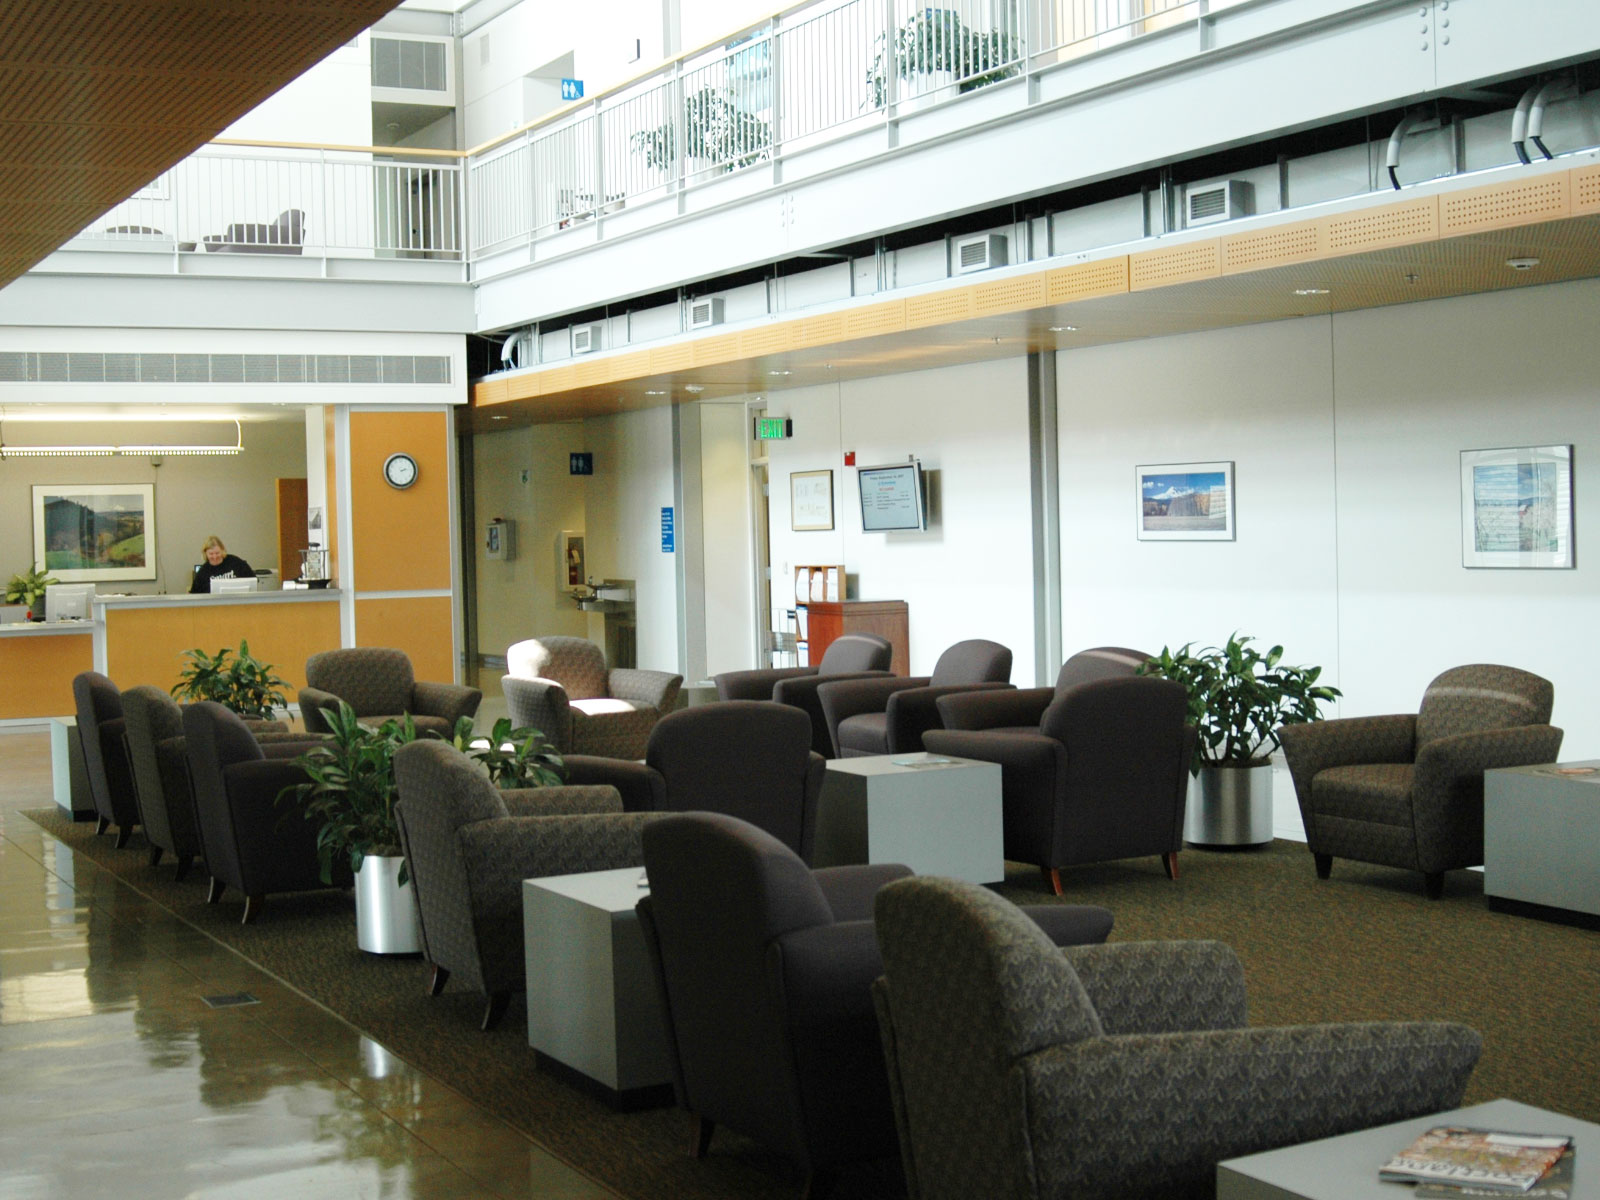 Displays, the front desk and rows of chairs in the lobby and commons gallery of the Wilsonville campus